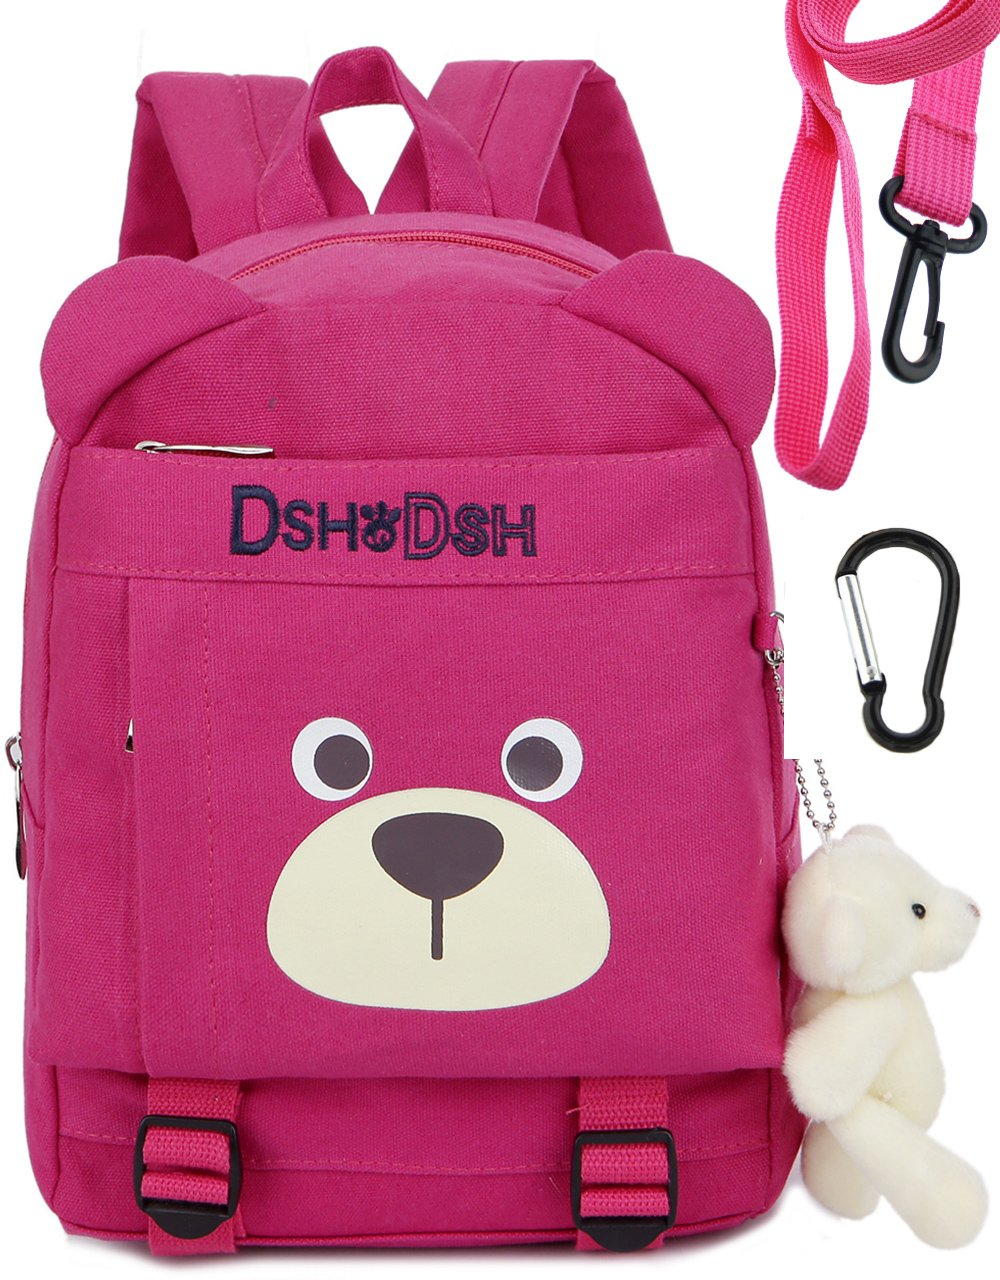 Toddler Kid Backpack Organizer Harness Leash Daycare for School Bags Girls(Pink)